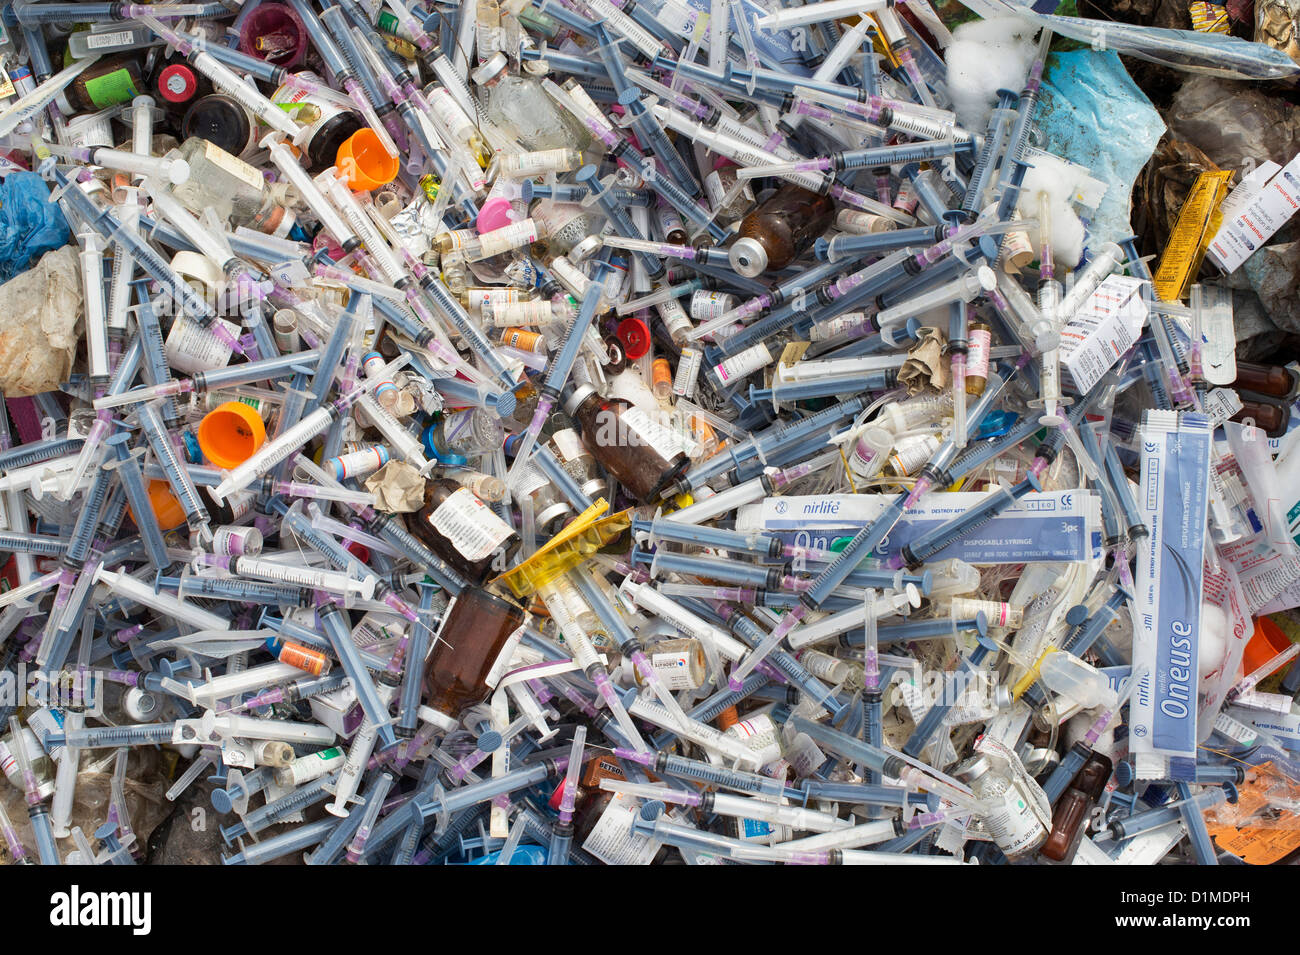 Hypodermic syringes with needles dumped in rubbish in the Indian countryside. Andhra Pradesh, India - Stock Image